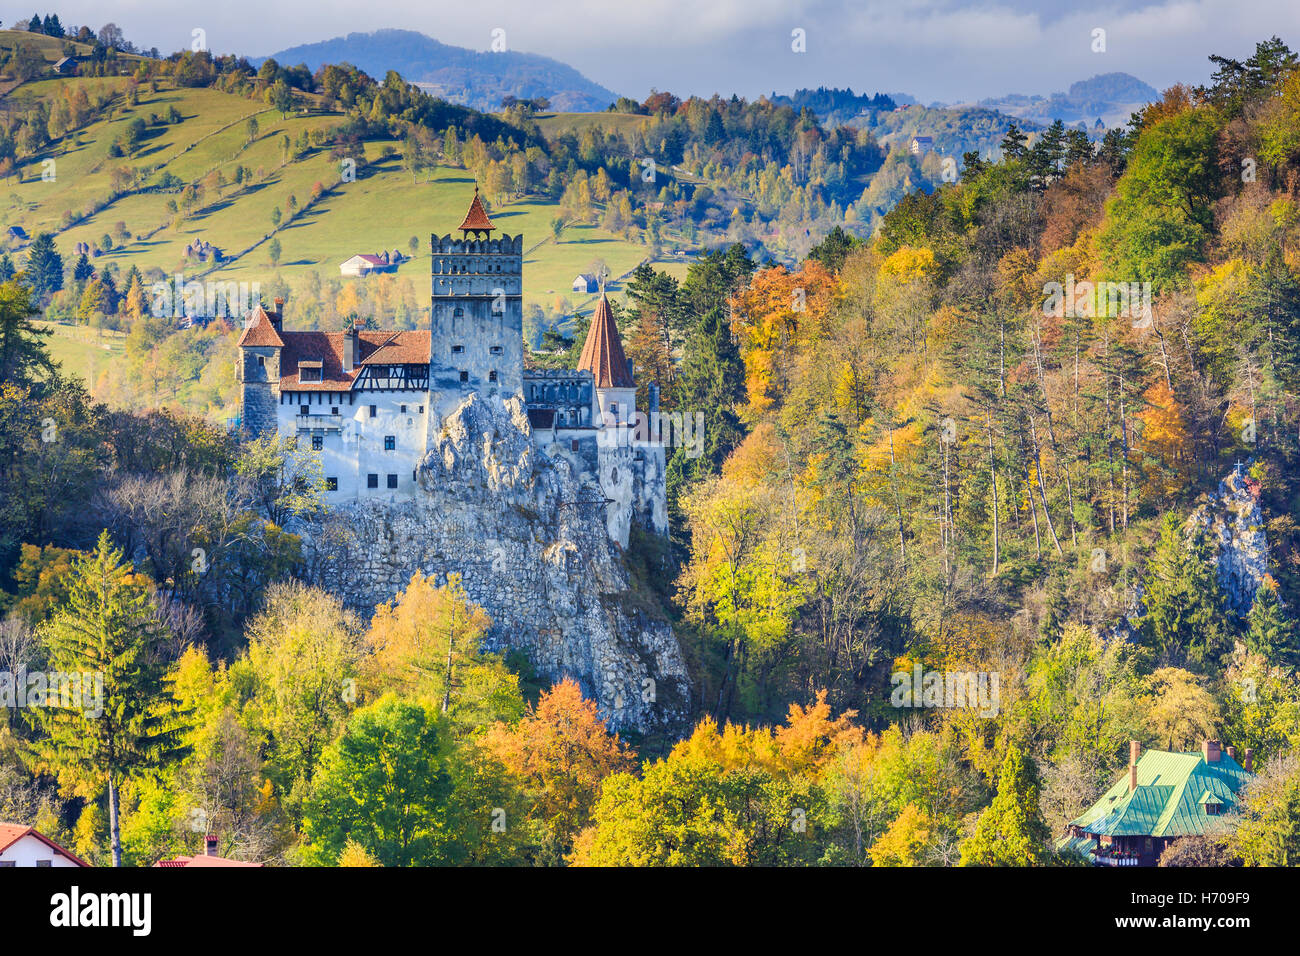 Brasov, Transylvania. Romania. The medieval Castle of Bran. Stock Photo